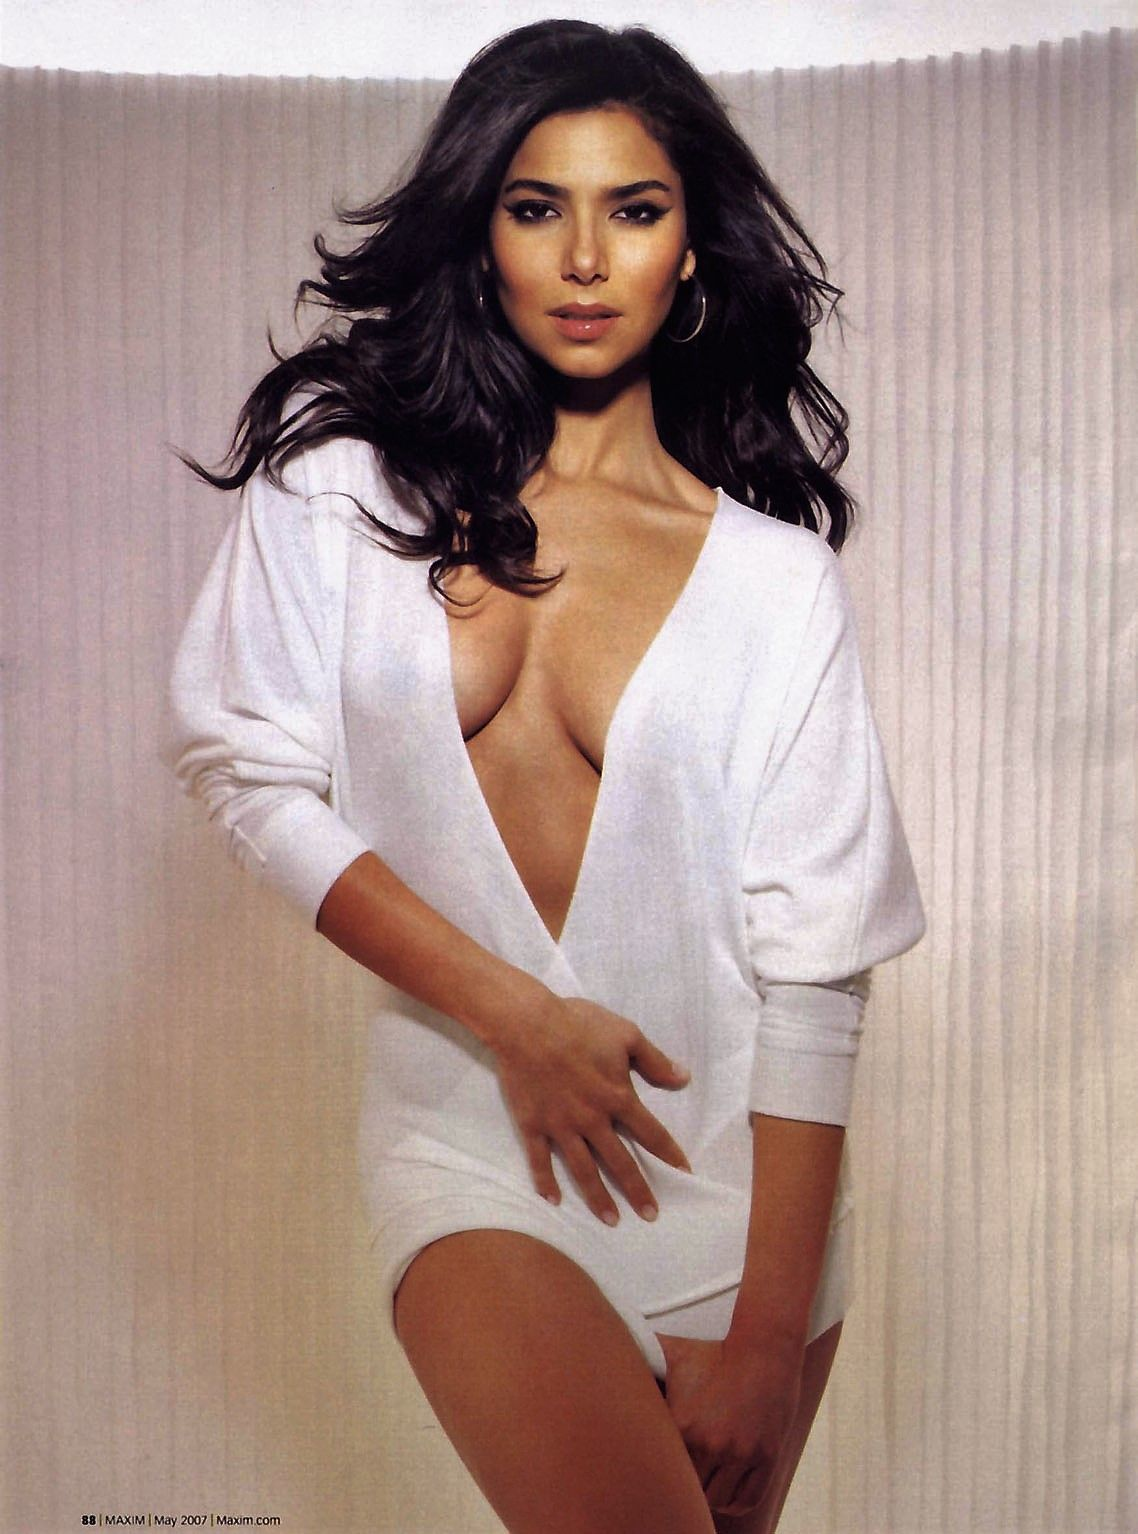 Roselyn Sanchez Cleavage Cleavage in Pinterest Roselyn